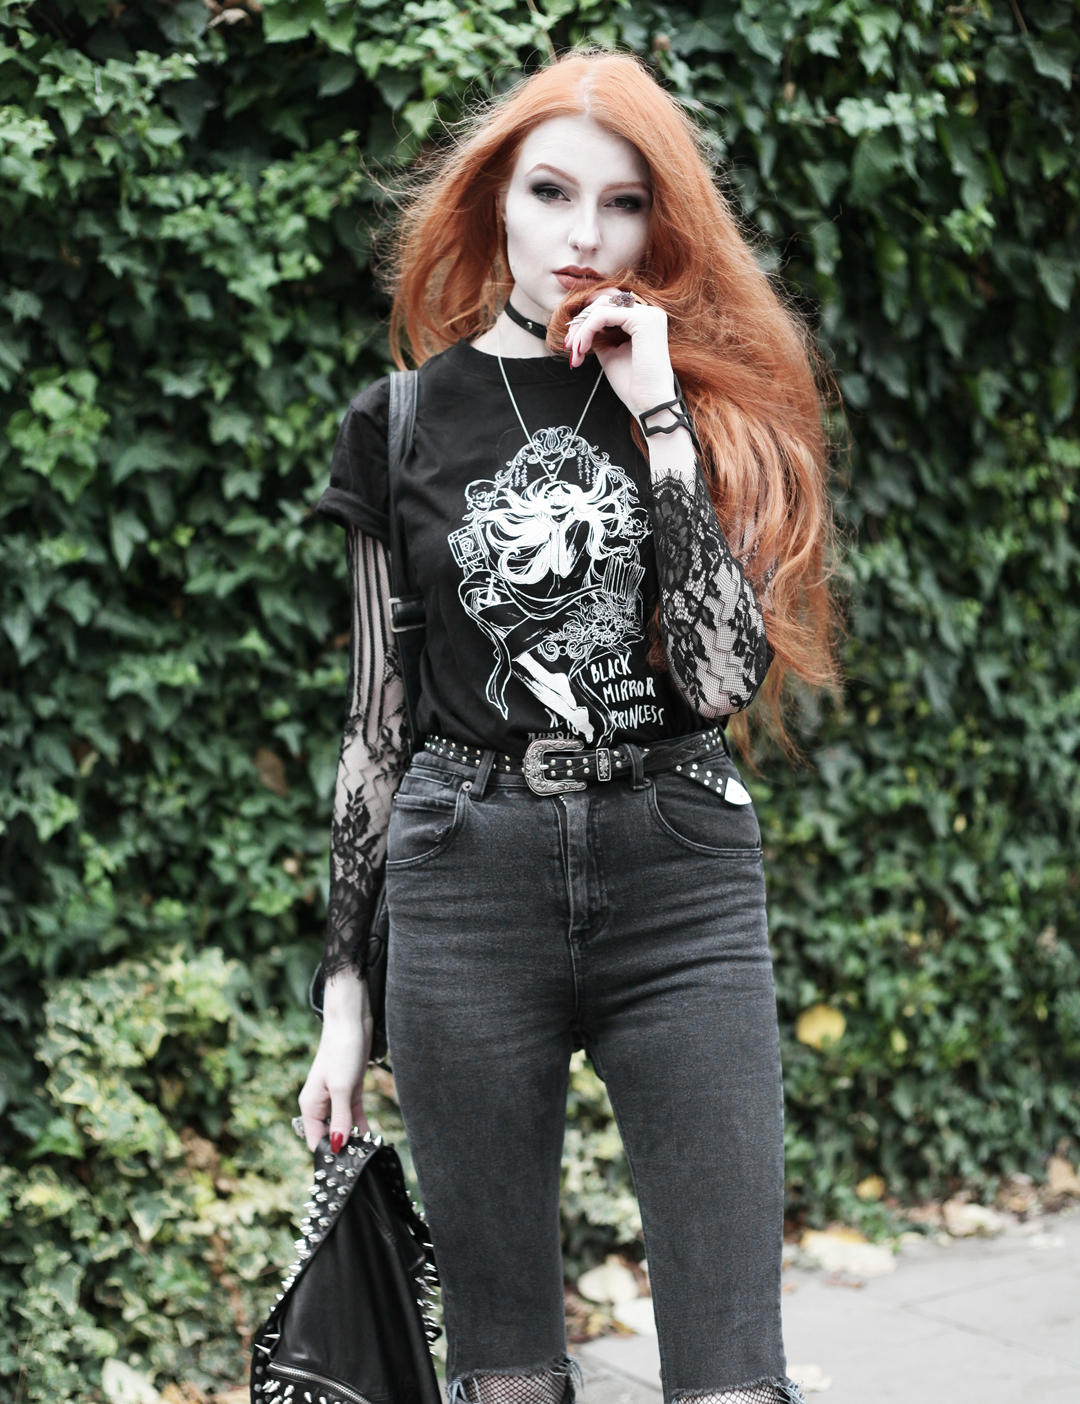 Olivia Emily wears CosQueen Black Mirror Princess Tee, Motel Black Lace Top, Asos Western Belt, Asos High Waisted Ripped Jeans